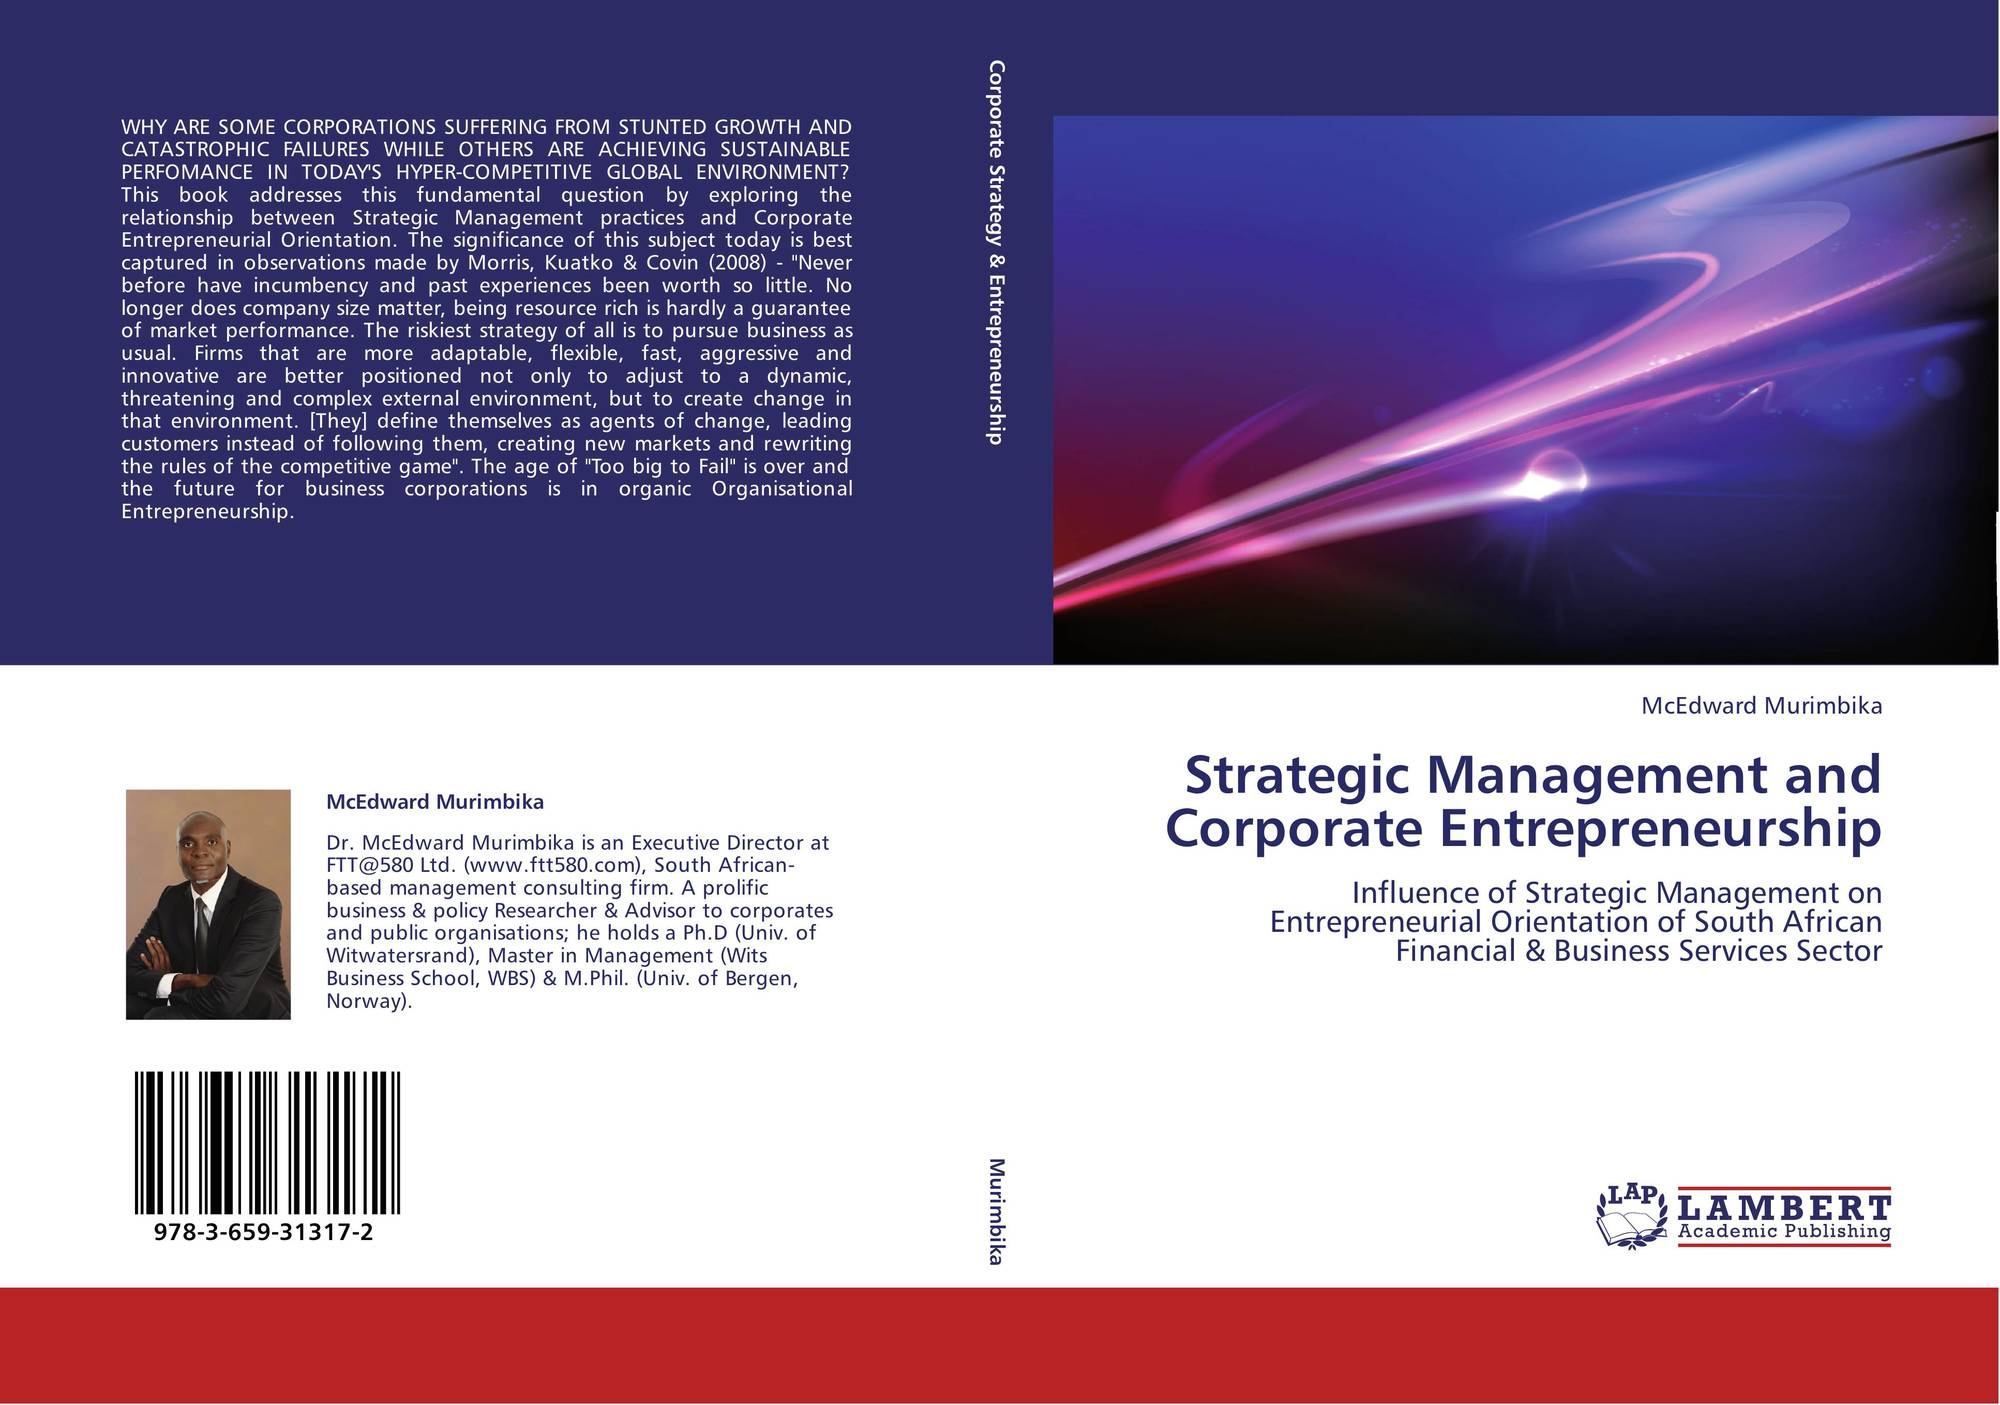 managing resources for corporate entrepreneurship the Setiawan h erdogan b and ogunlana so (2012) corporate entrepreneurship for contracting companies: the current issues in: smith, sd (ed) procs 28th annual arcom conference, 3-5 september.